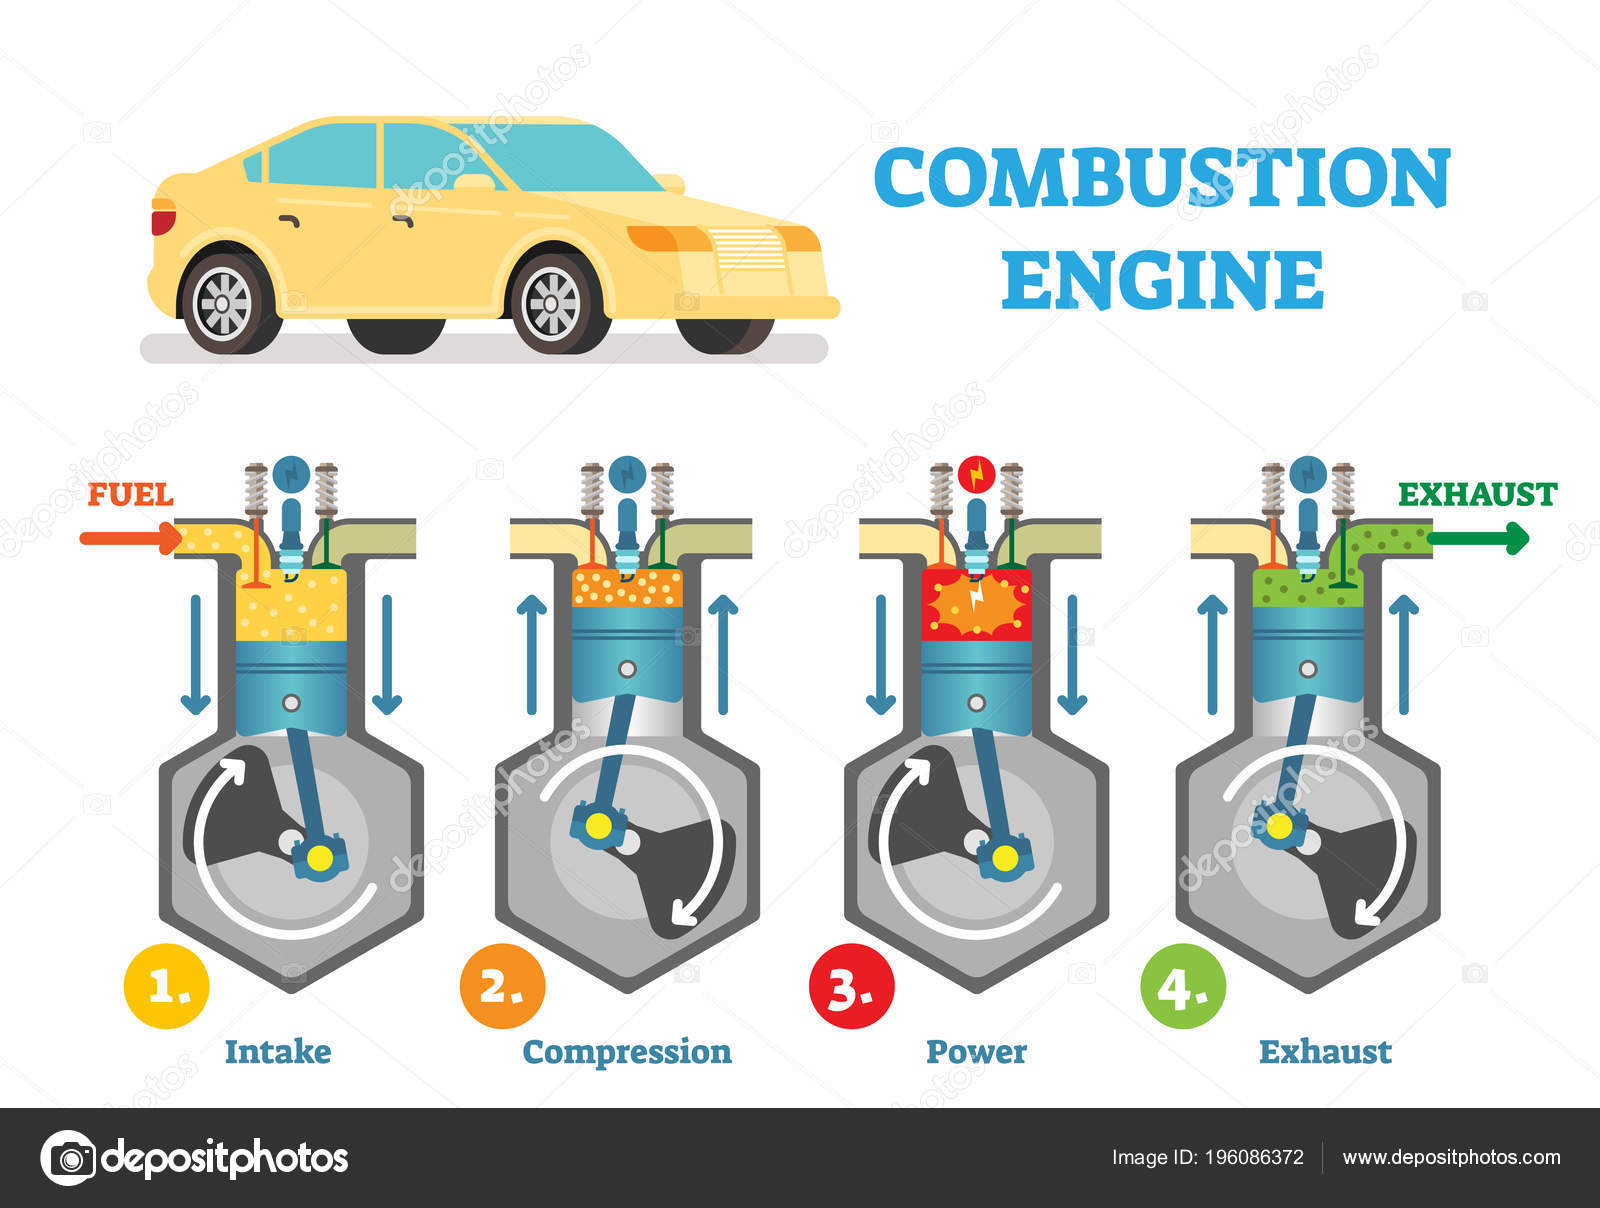 hight resolution of combustion engine technical vector illustration diagram with fuel intake compression explosion and exhaust stages in cylinder